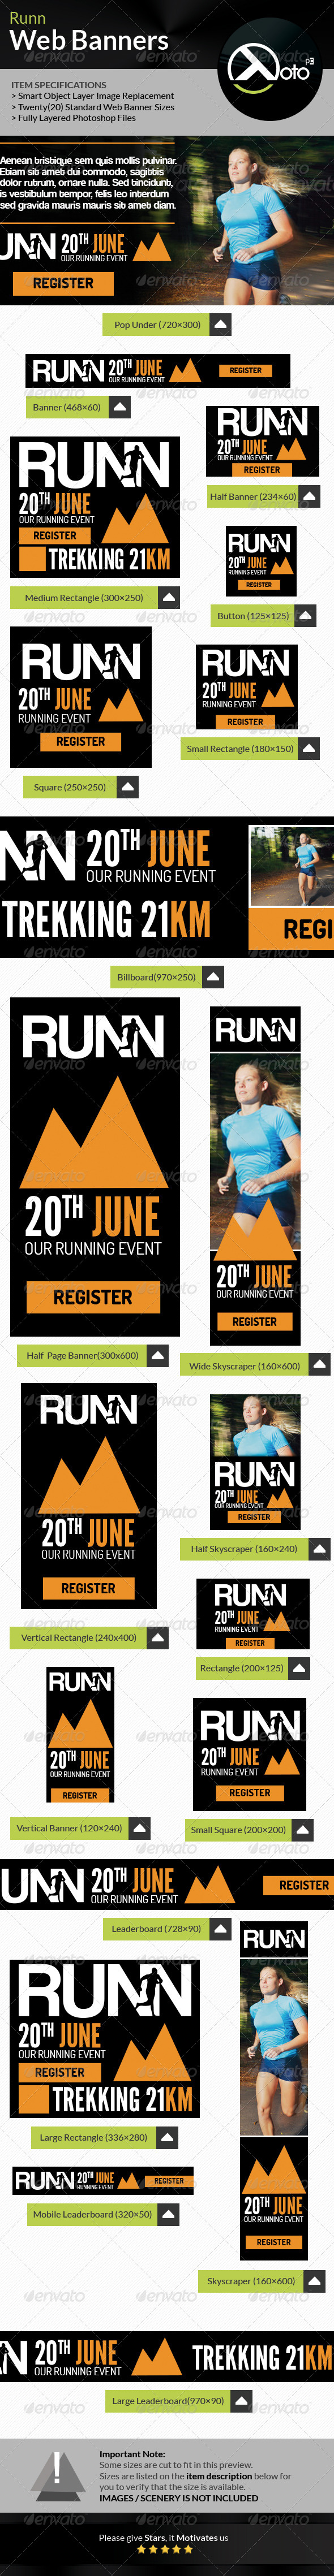 GraphicRiver Runn Marathon Running Club Fitness Web Banners 8027874